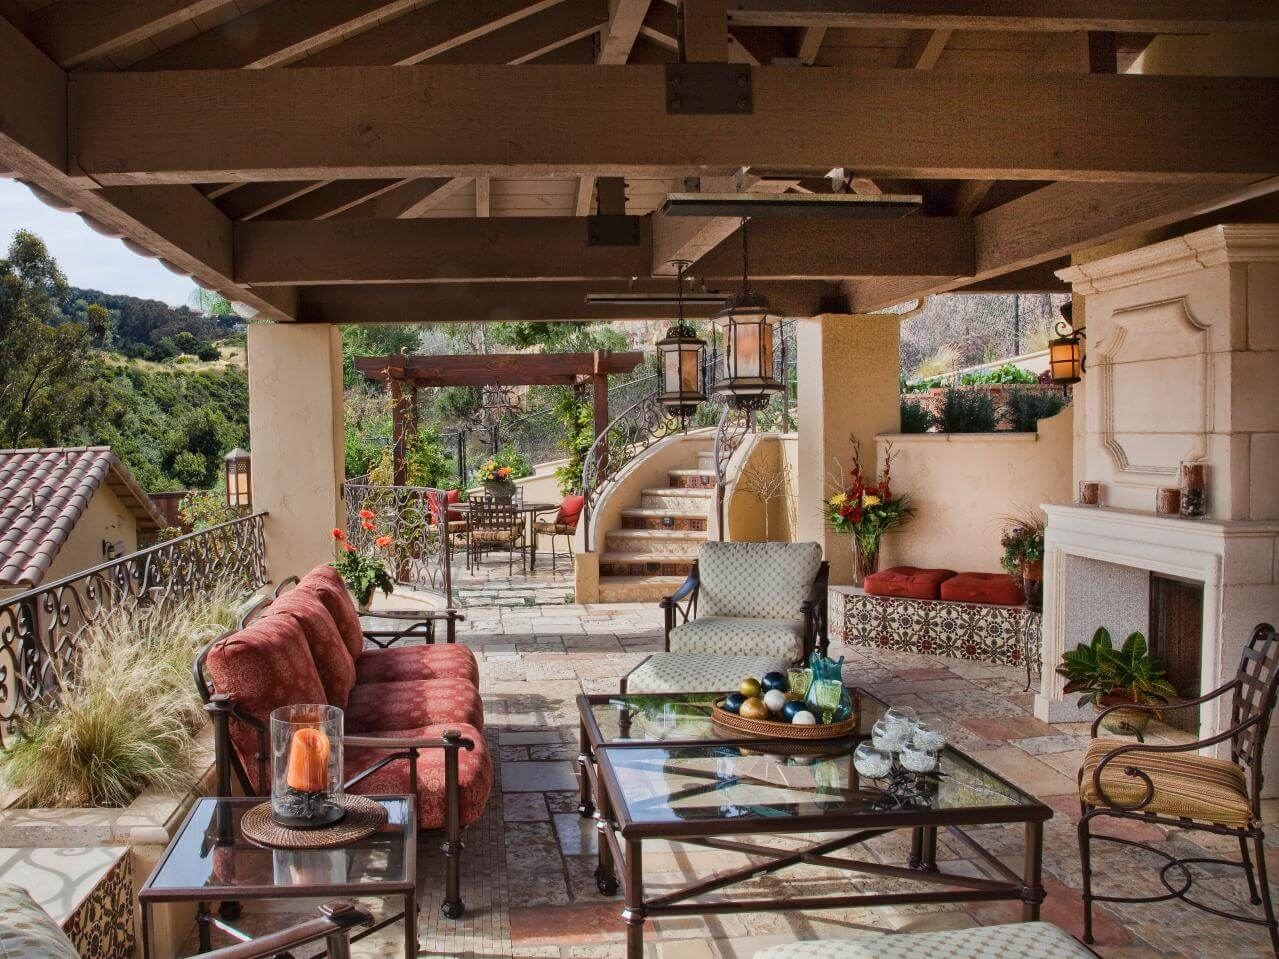 15+ Enhancing Backyard Patio Design Ideas For Small Spaces on Small Backyard Living Spaces  id=97636